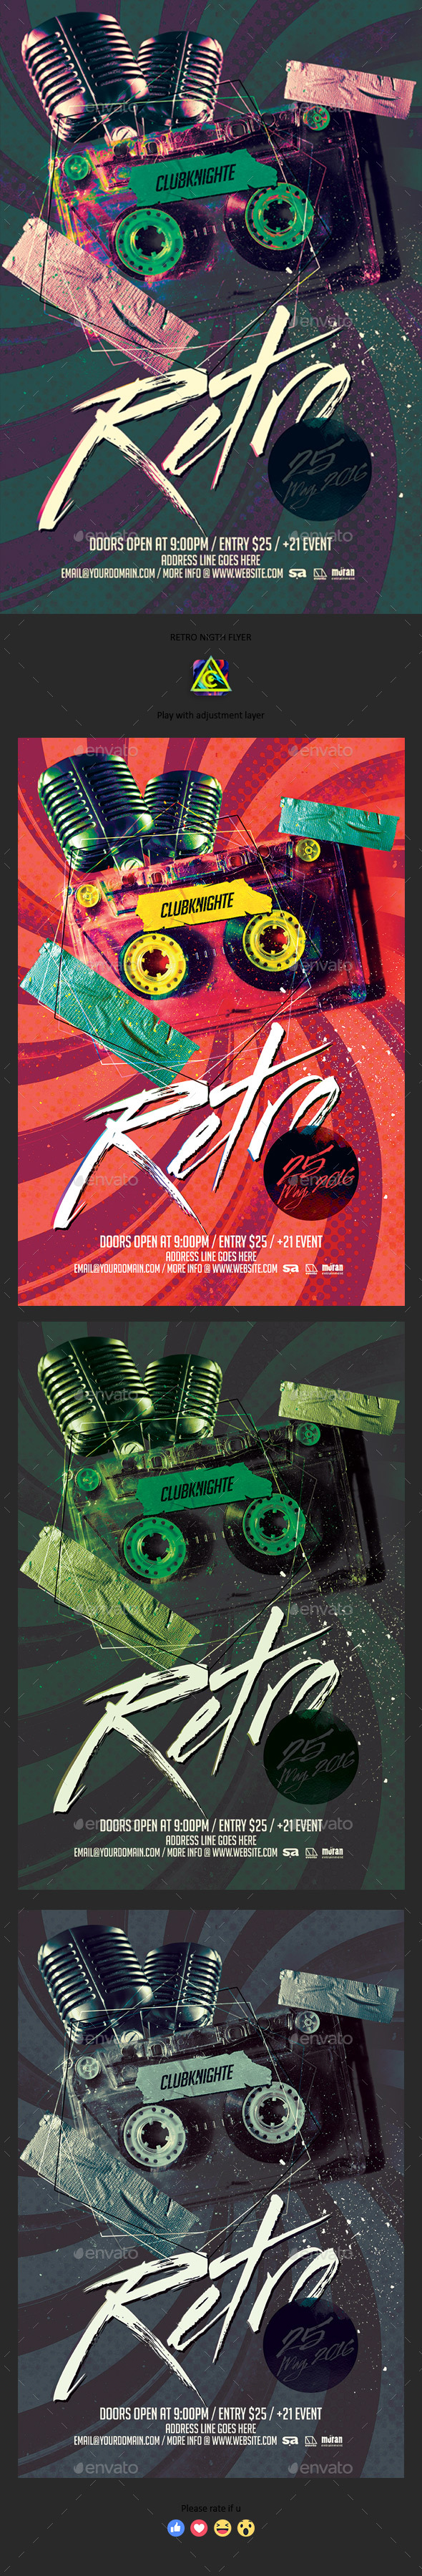 Retro Night Flyer - Clubs & Parties Events